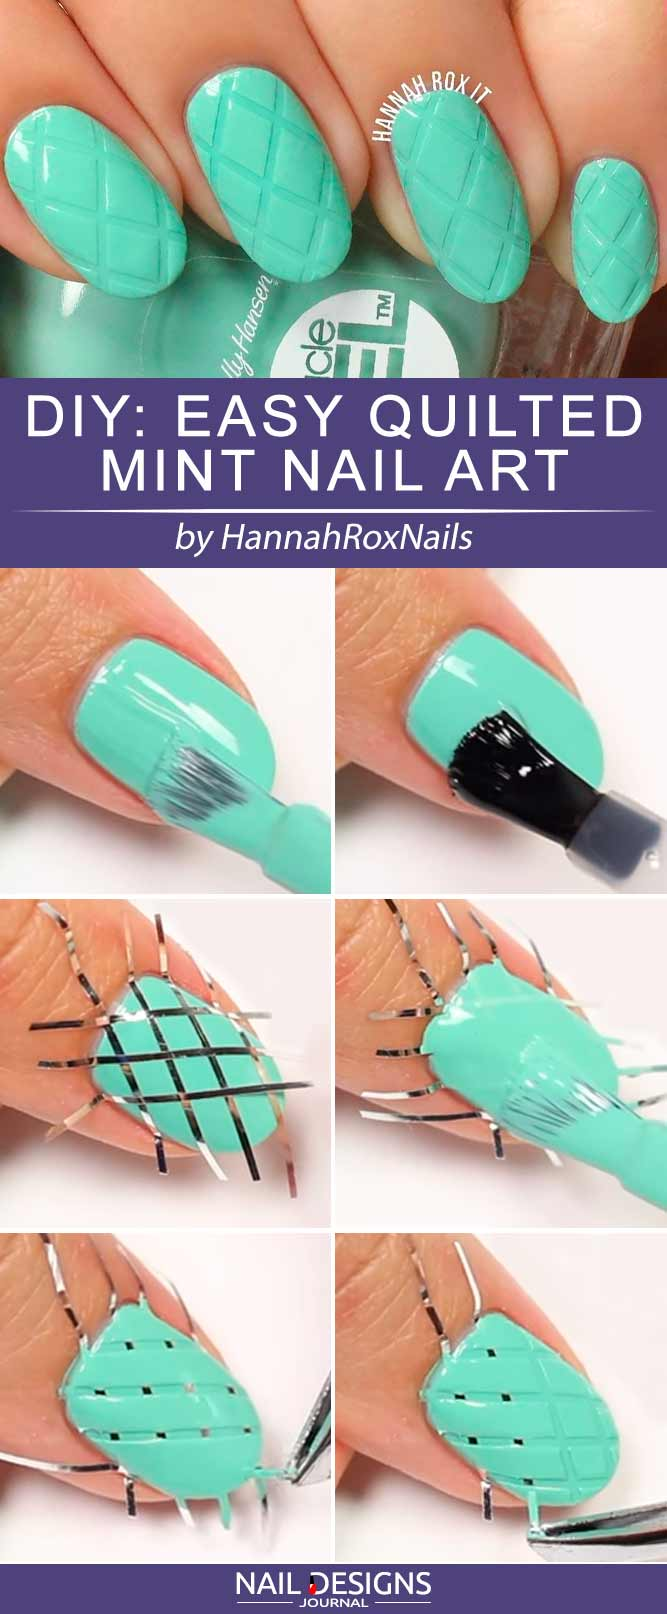 Easy Quilted Nails